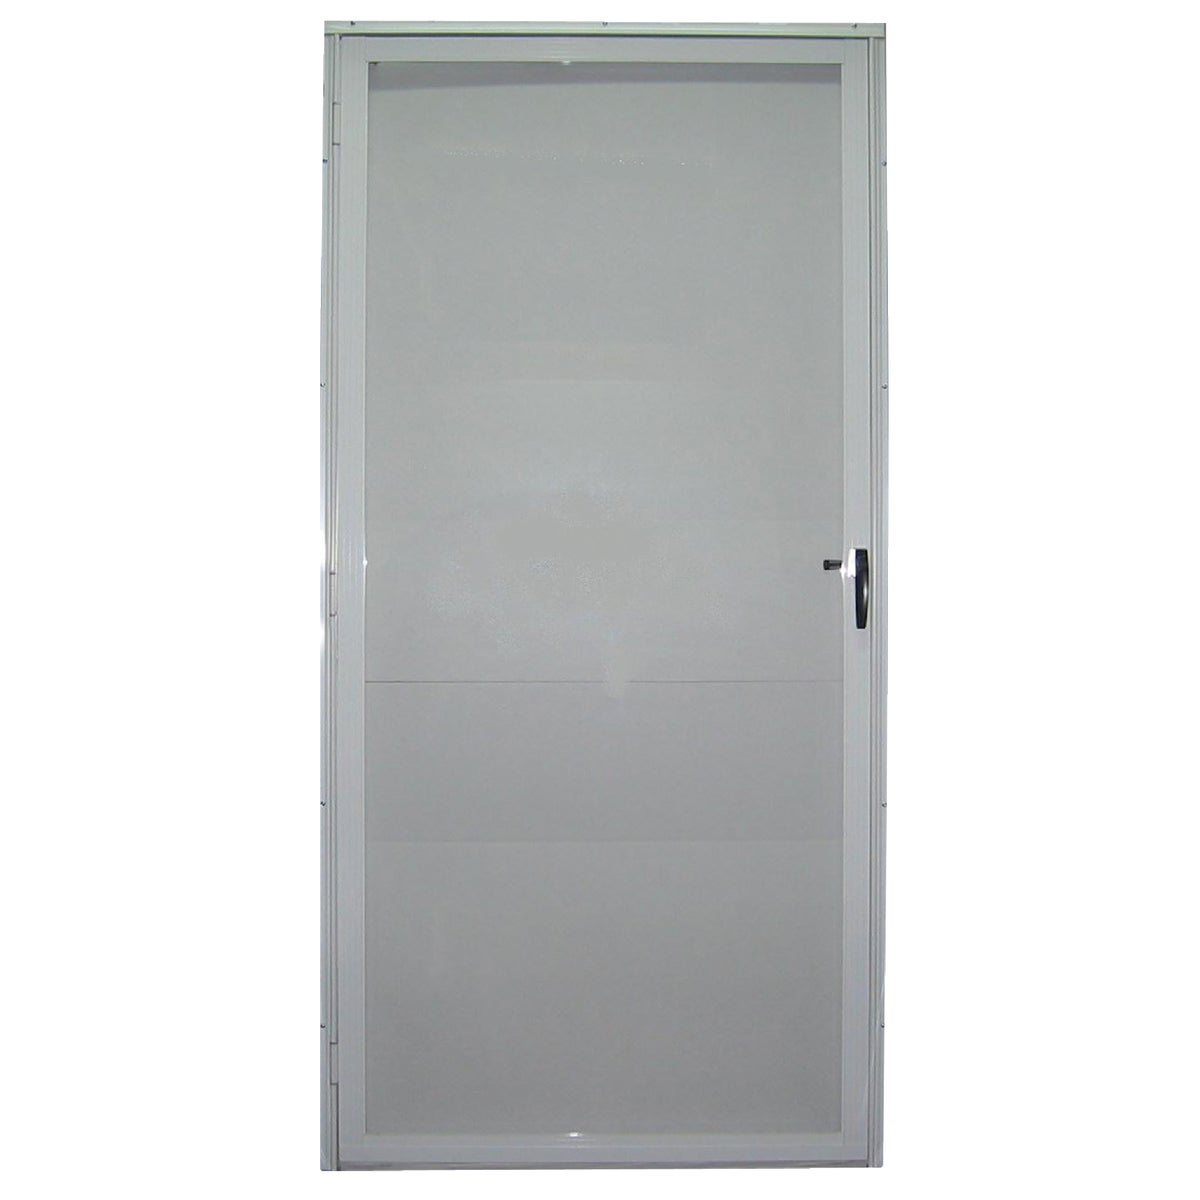 265 3068 LH WHT DOOR - F06010 by Croft Llc